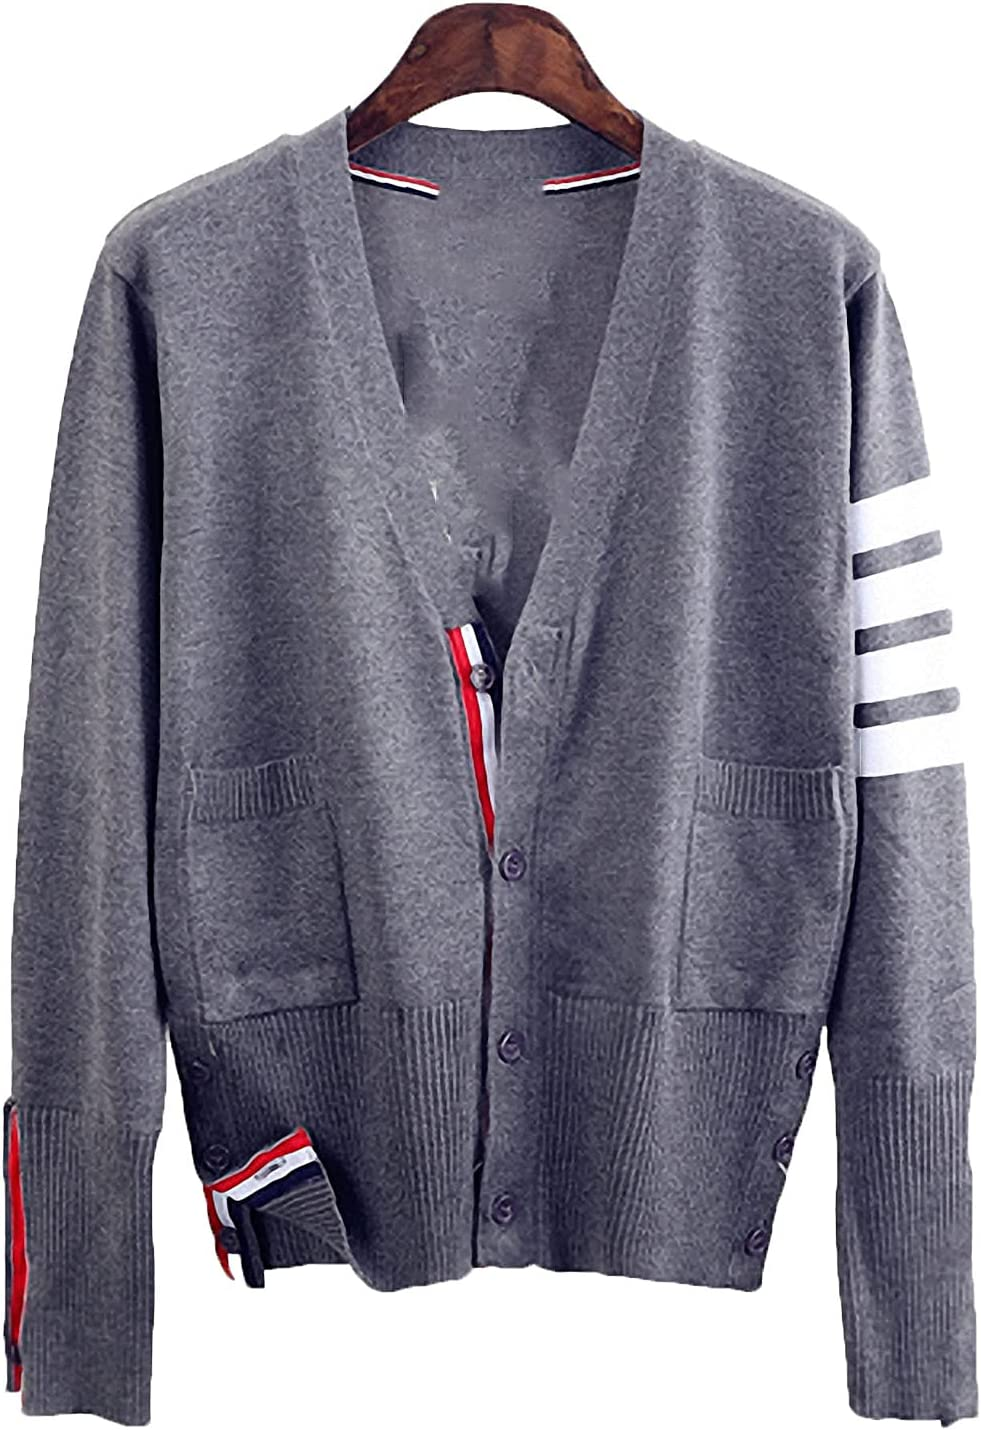 Barsly Spring and Autumn and Knitted Shirts Striped Cardigan Women Sweater